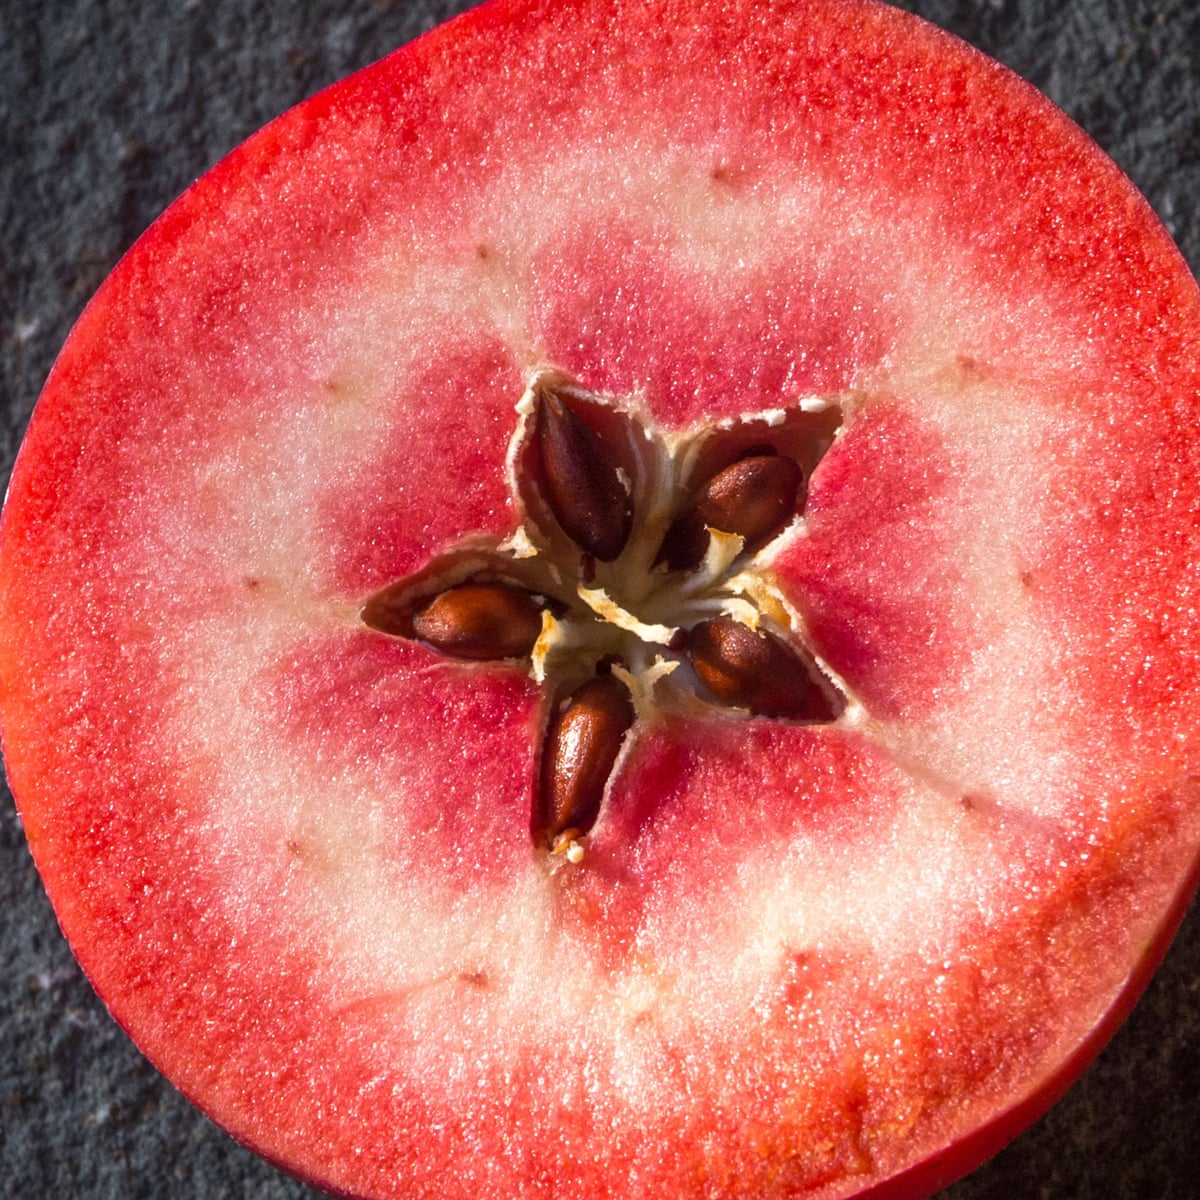 Weird New Fruits Could Hit Aisles Soon Thanks To Gene Editing